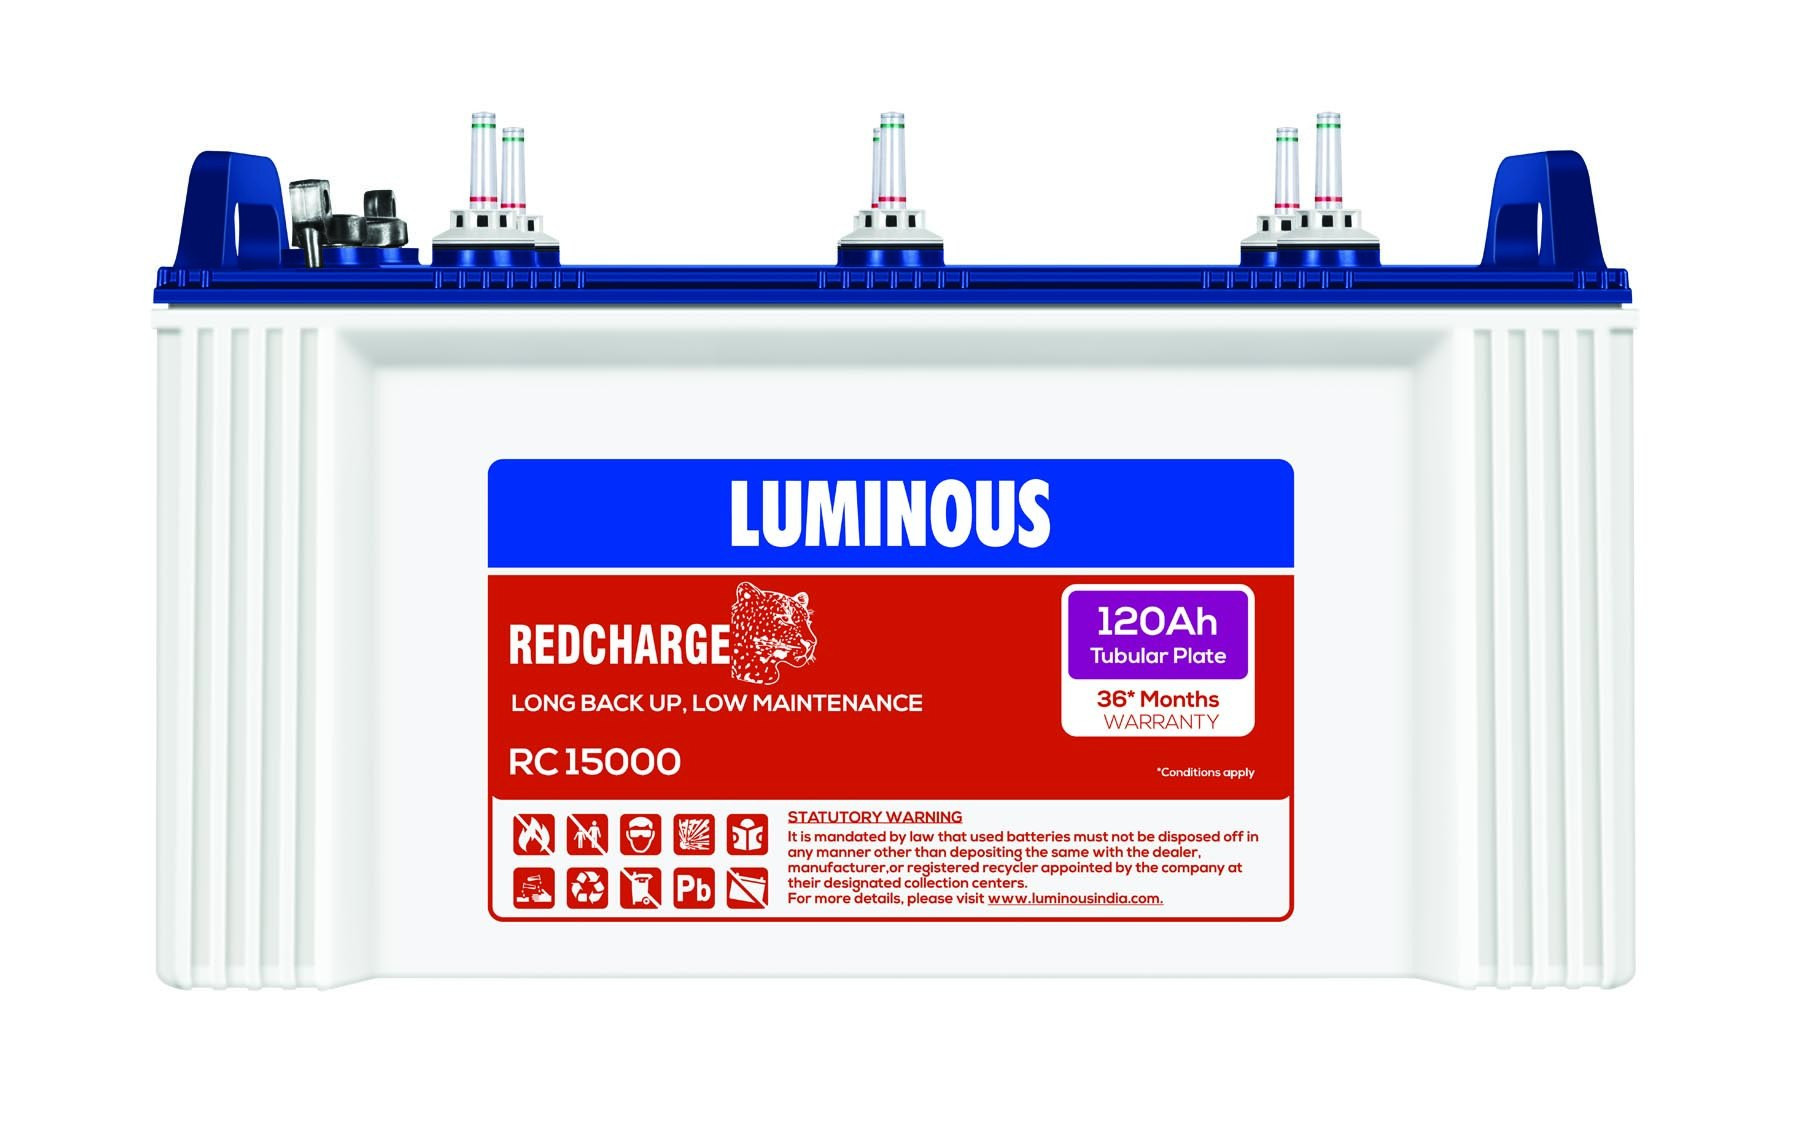 Luminous 12v 120AH Redcharge Tubular Battery RC 15000